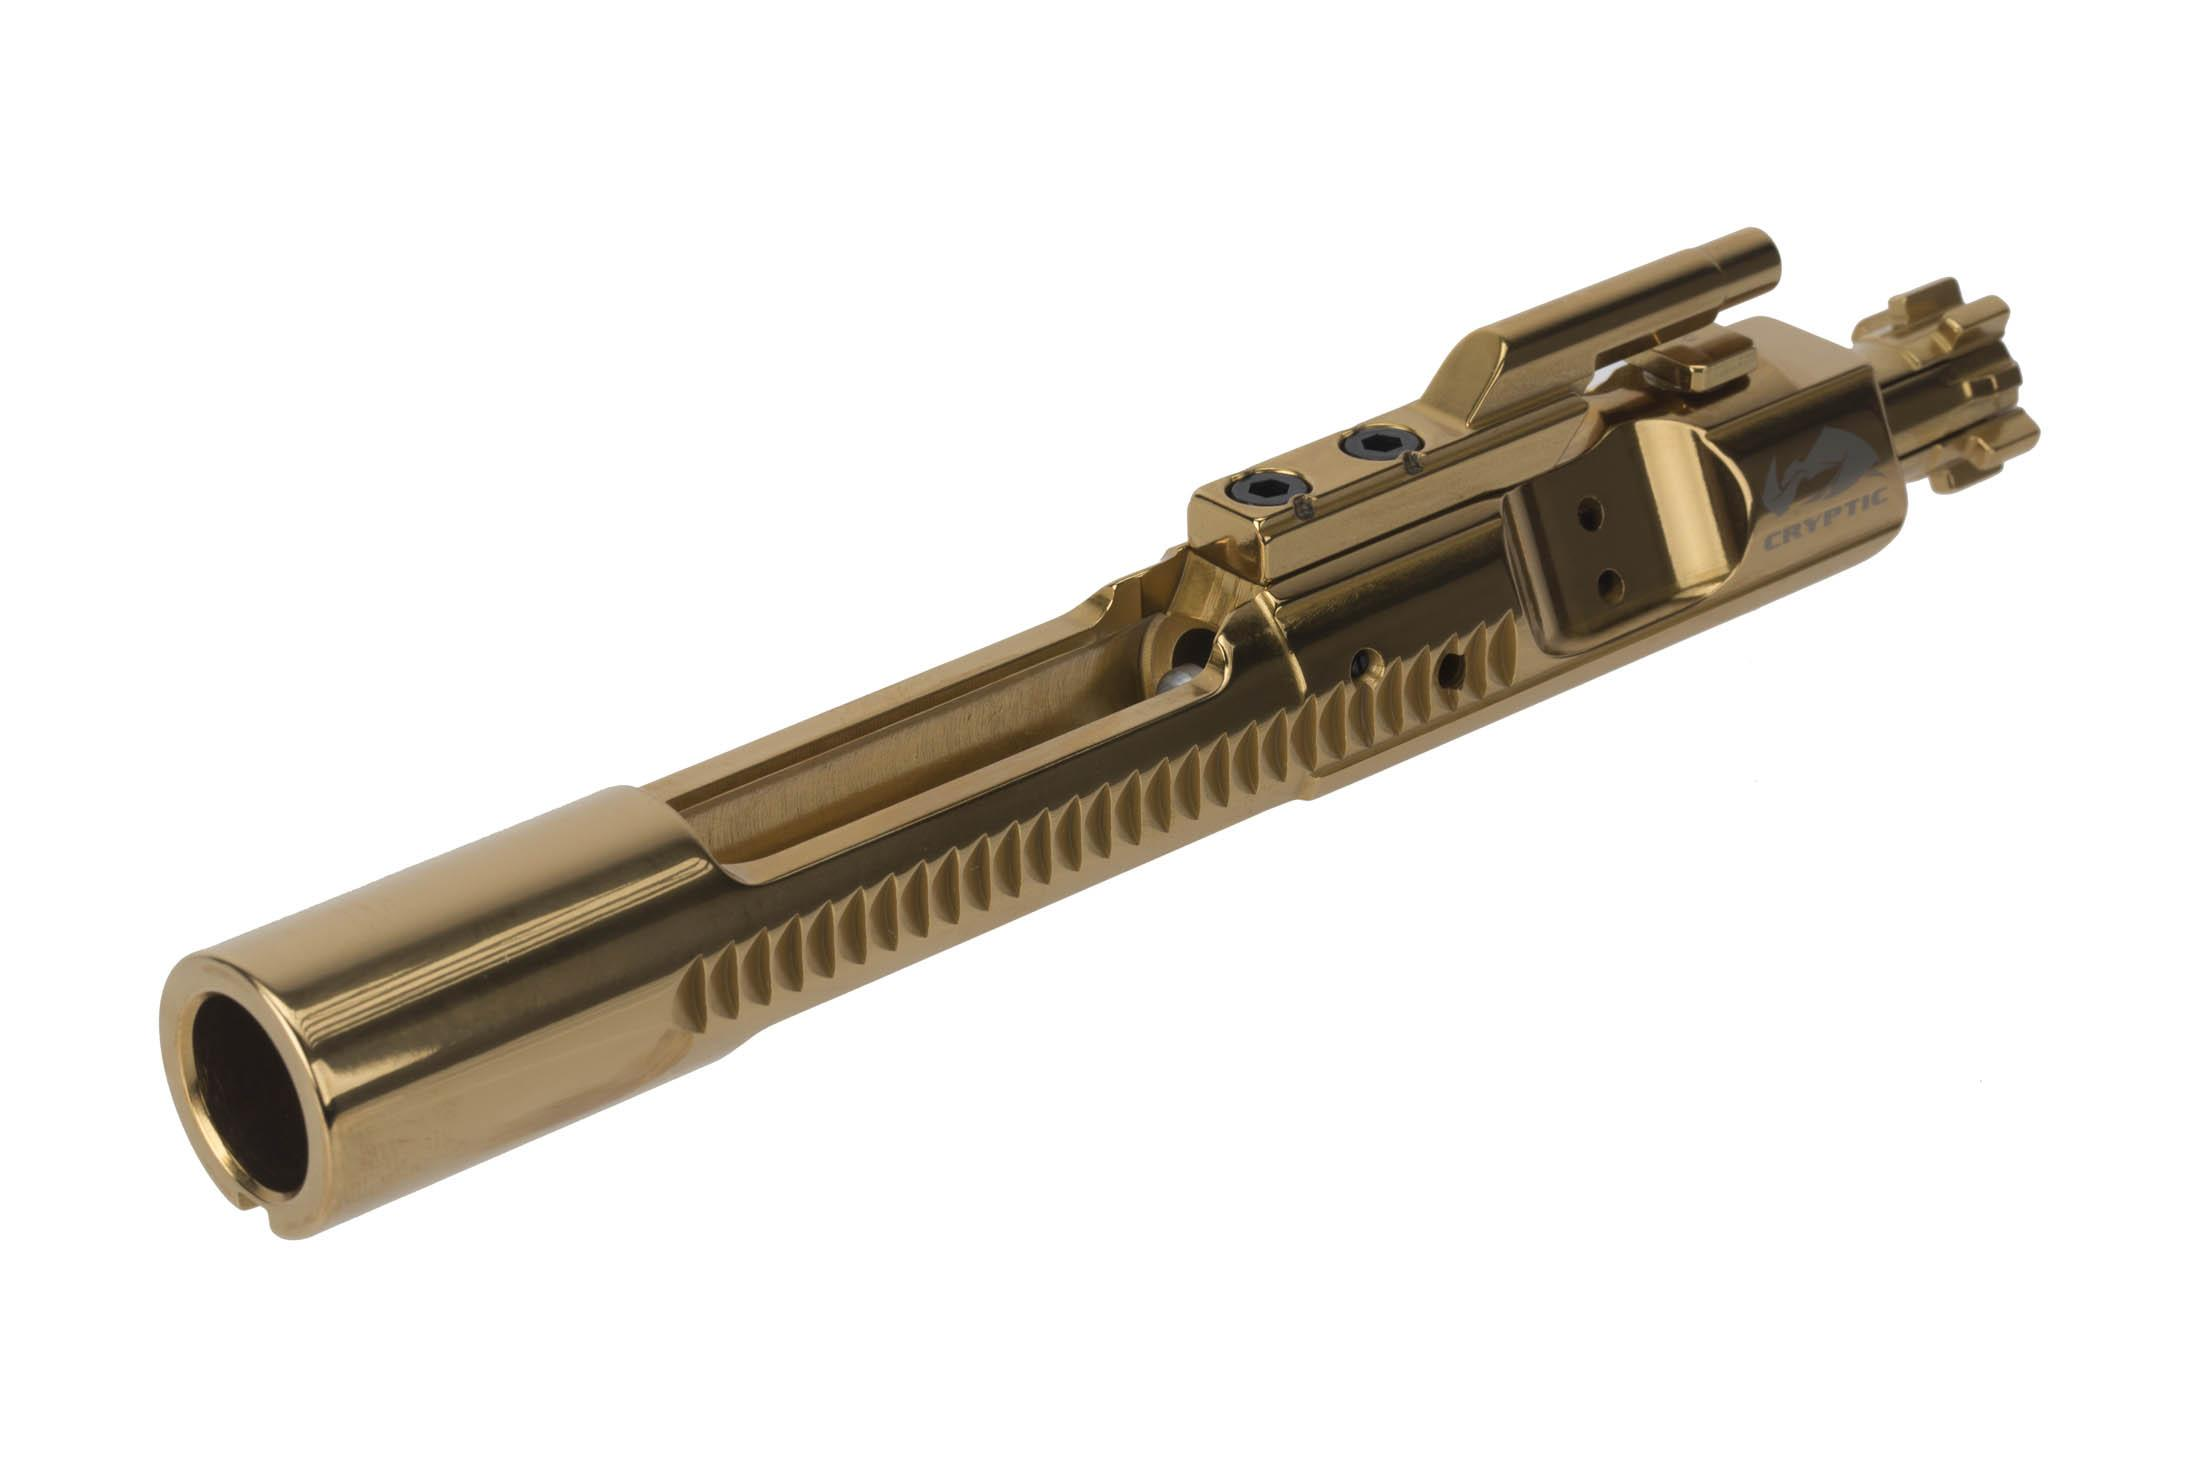 Cryptic Coatings AR-15 bolt carrier group for 5.56 NATO with Mystic Gold finish features a full M16 profile tail